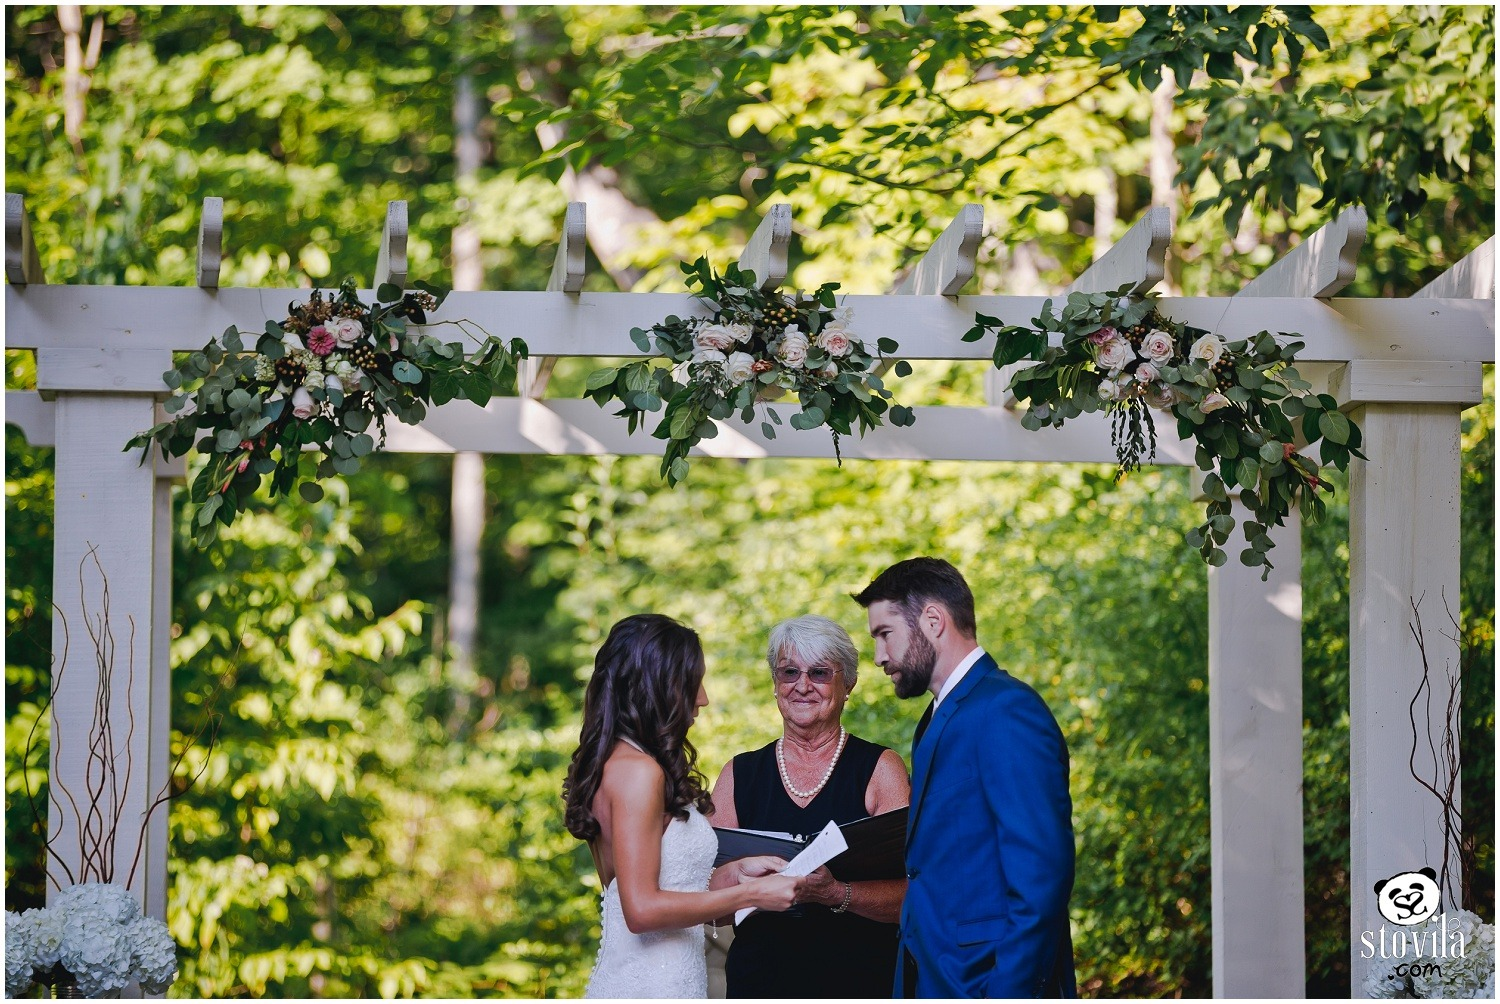 bd_wedding_glimmerstone_mansion_cavendish_vt_stovila-19